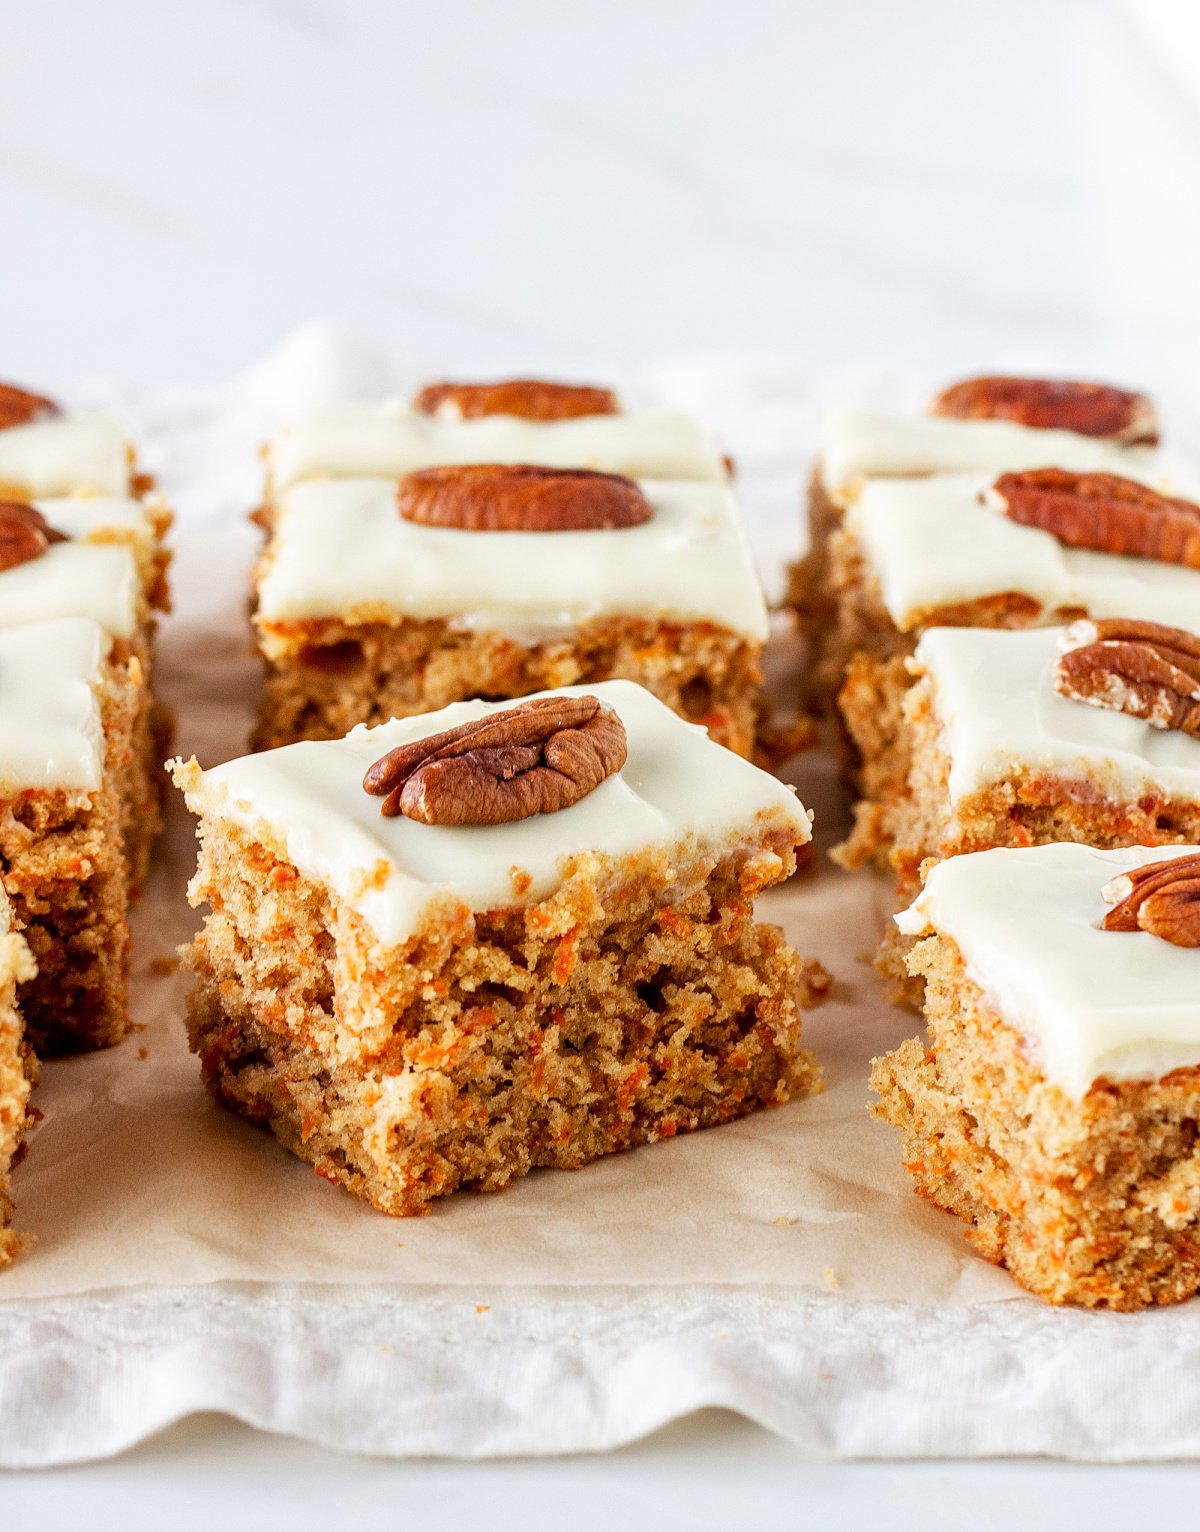 Squares of carrot cake with frosting and pecan, on white paper